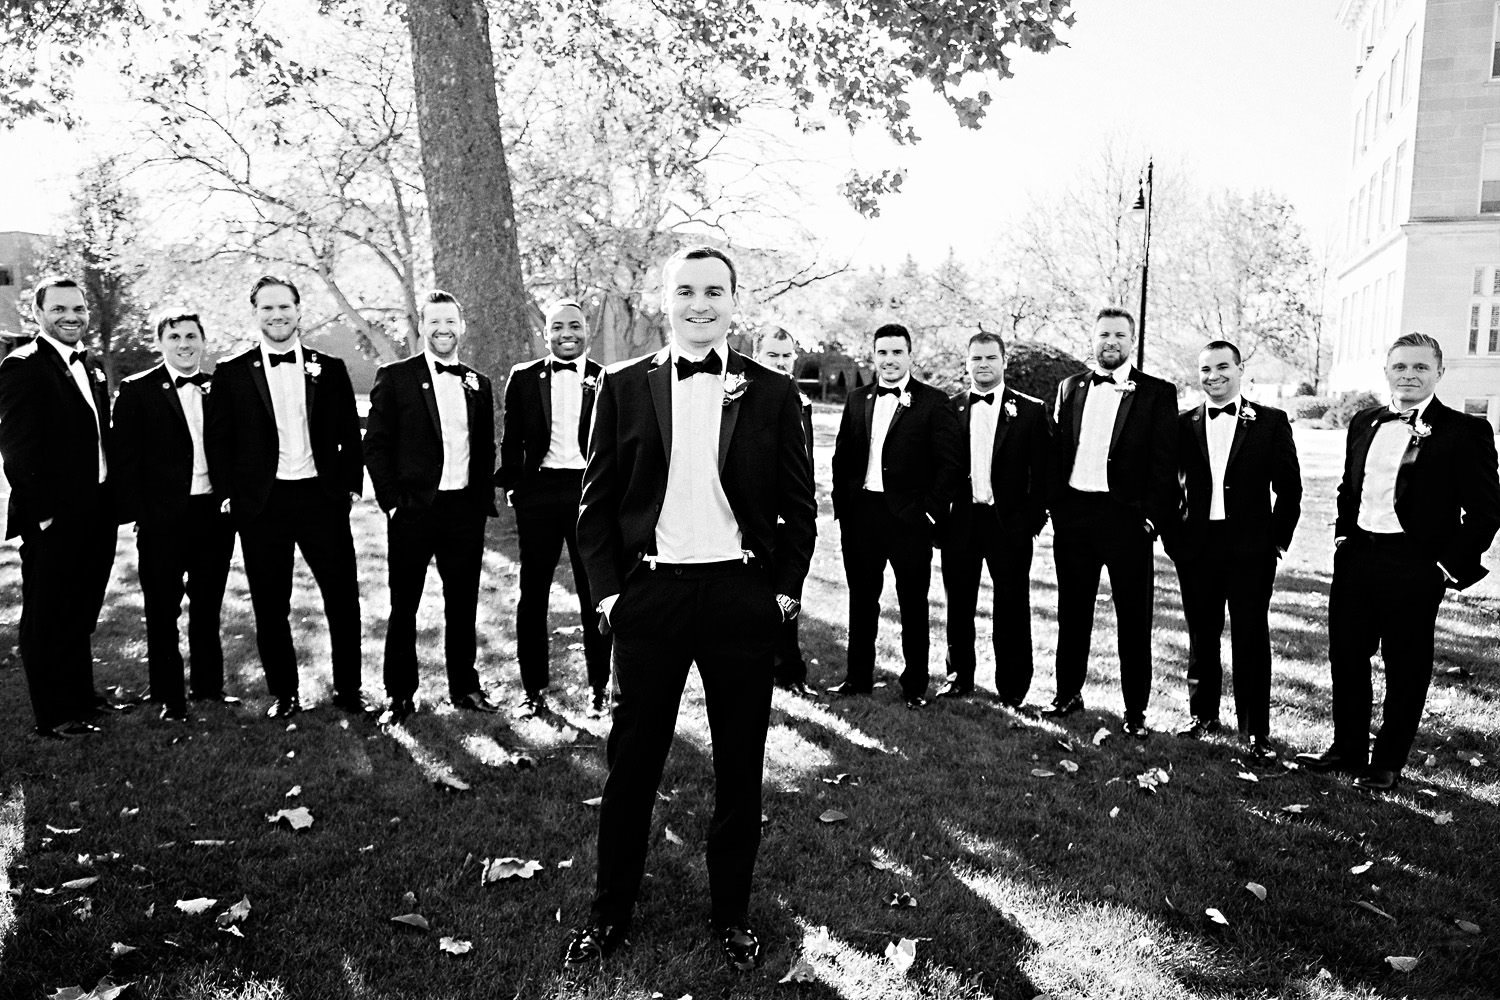 Groom and Groomsmen pose for a photo